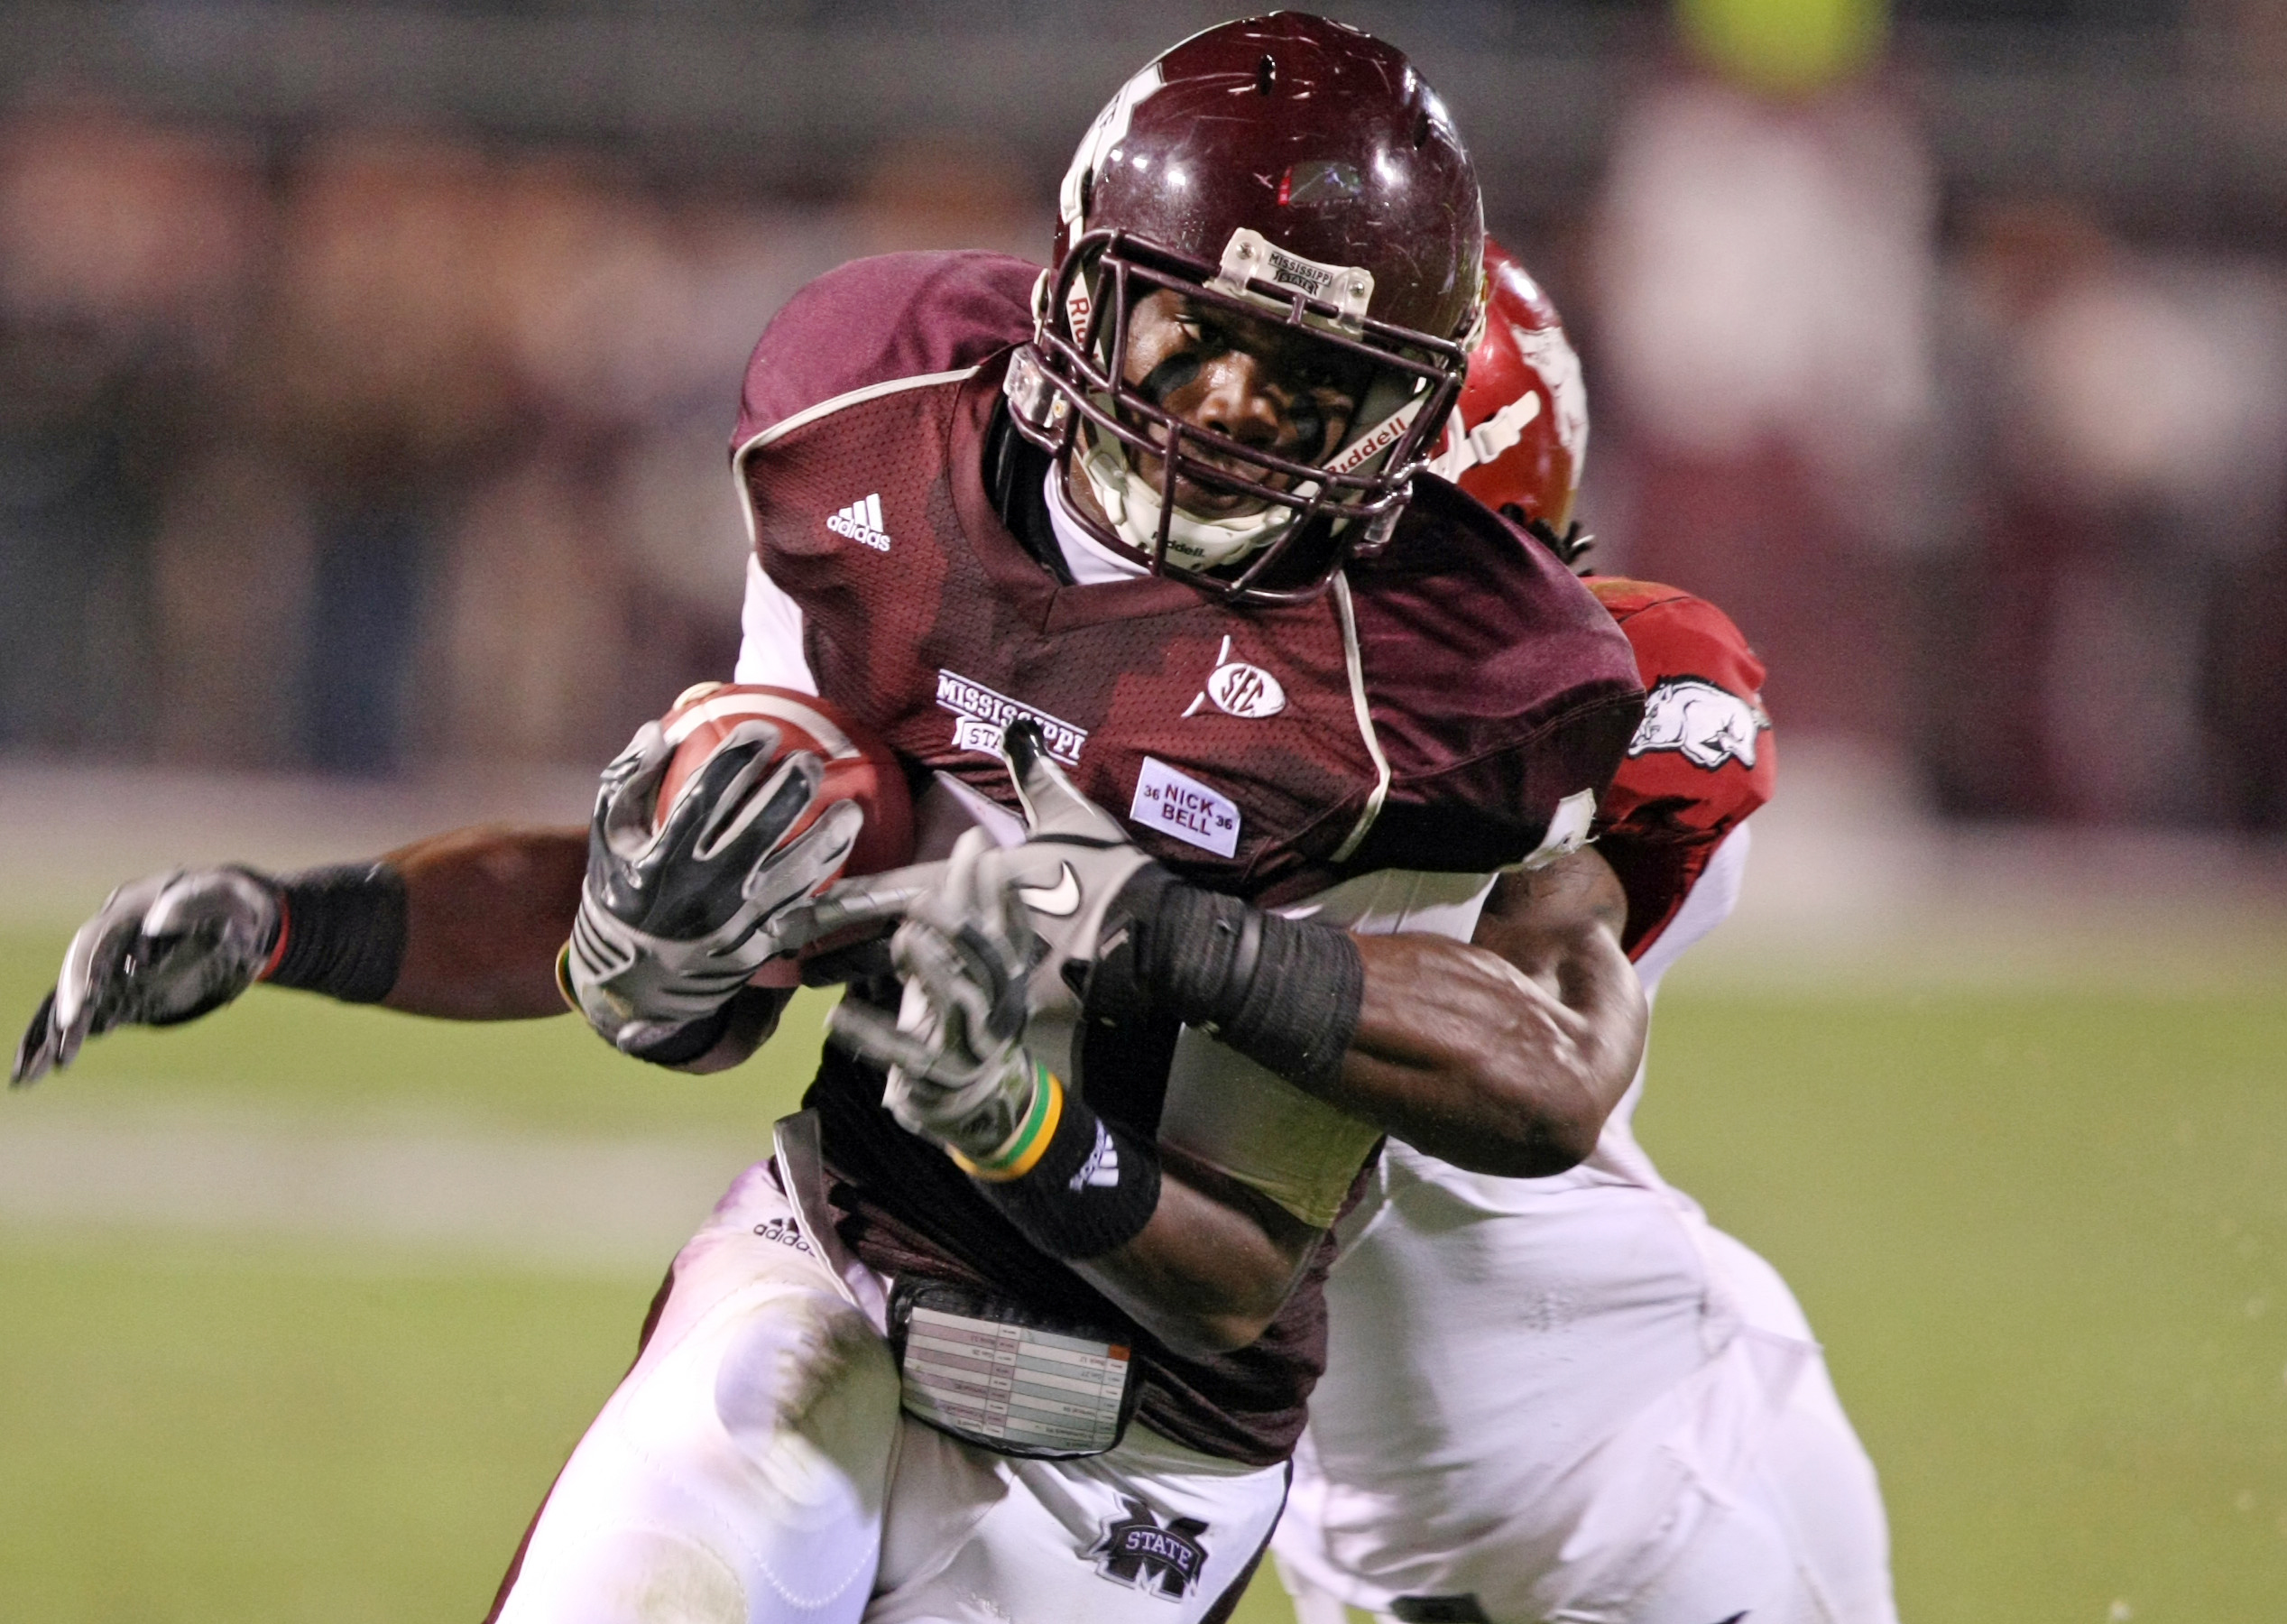 FILE - In this Nov. 20, 2010, file photo, Mississippi State wide receiver Chris Smith (8) completes a reception during the second quarter of an NCAA college football game against Arkansas in Starkville, Miss. Smith, a former Mississippi State University p